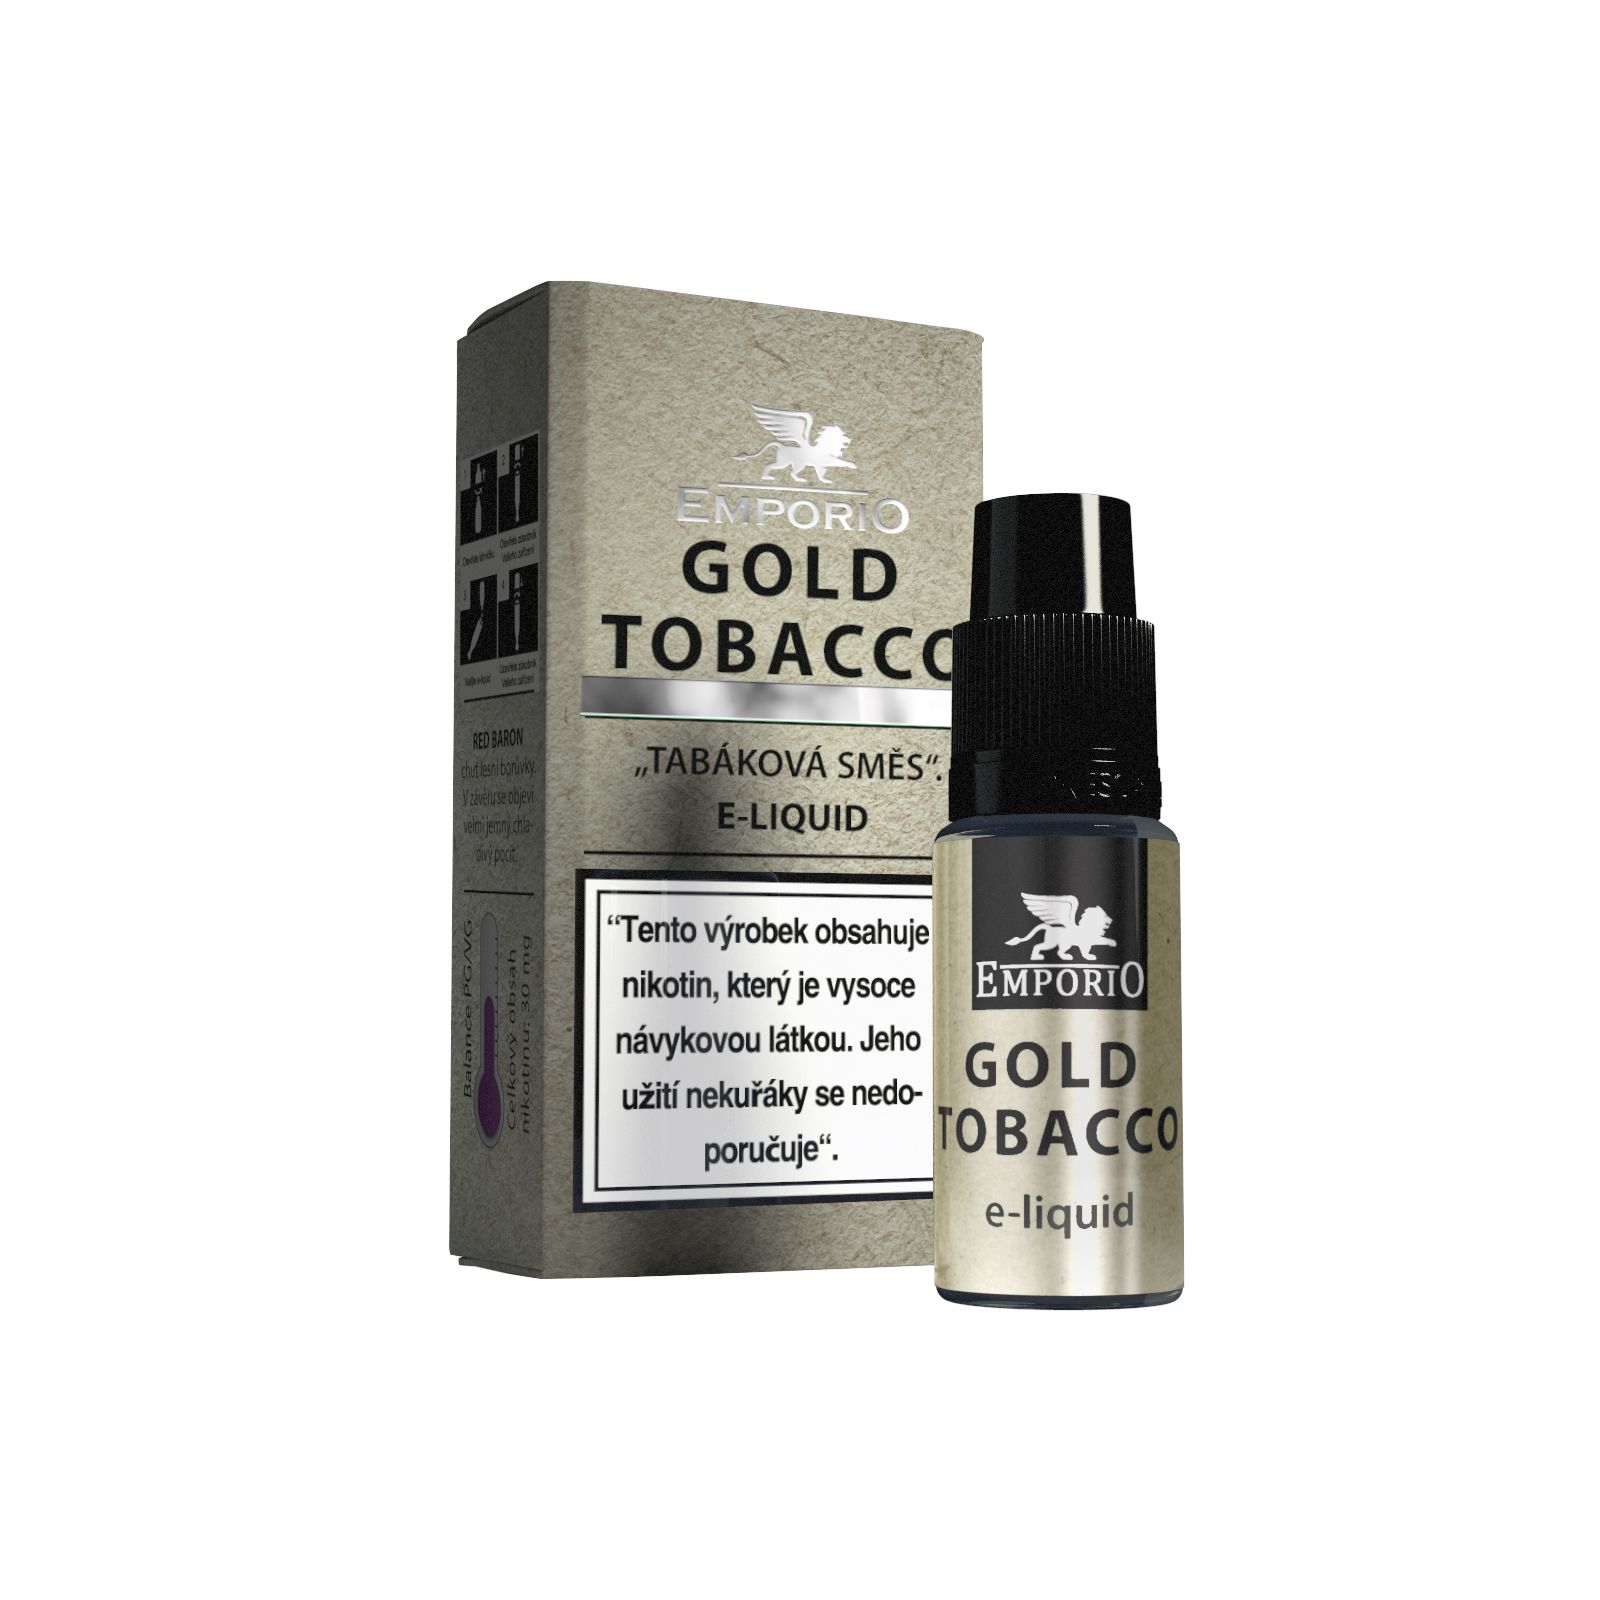 E-liquid Emporio Gold Tobacco 10ml